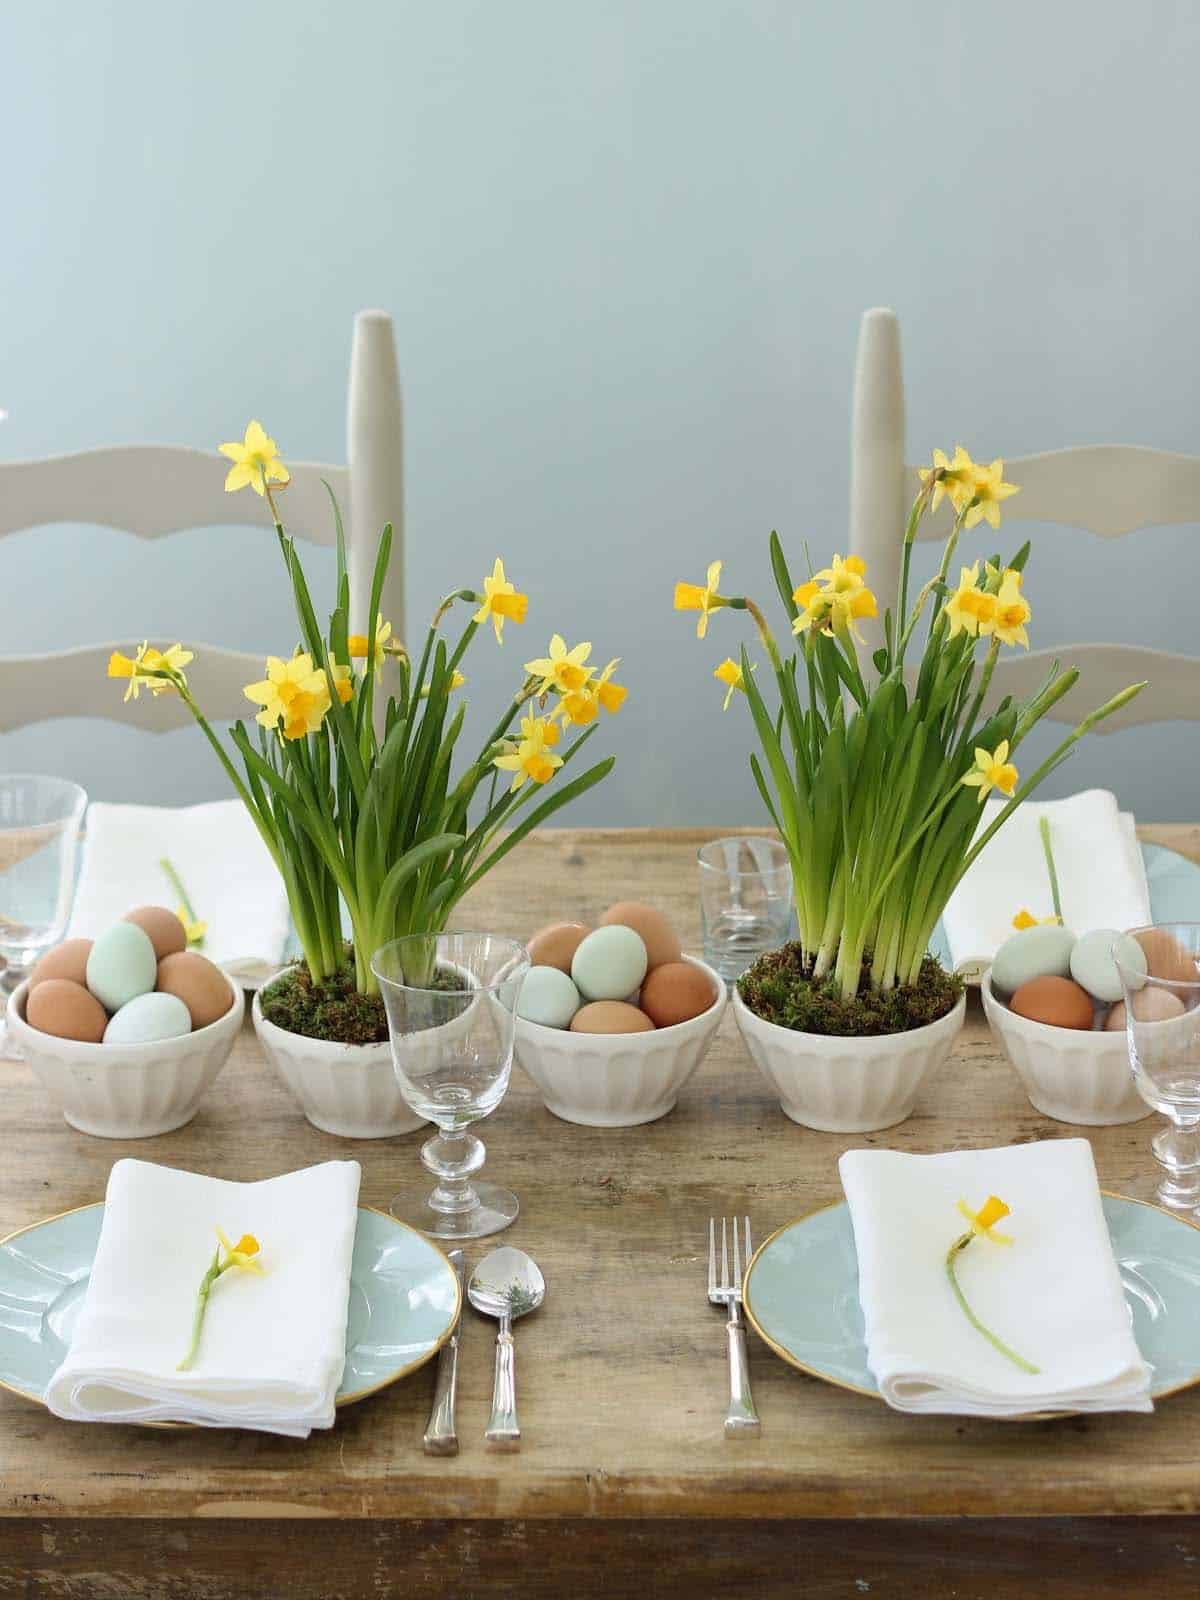 Inspiring Easter Table Centerpiece Ideas-11-1 Kindesign